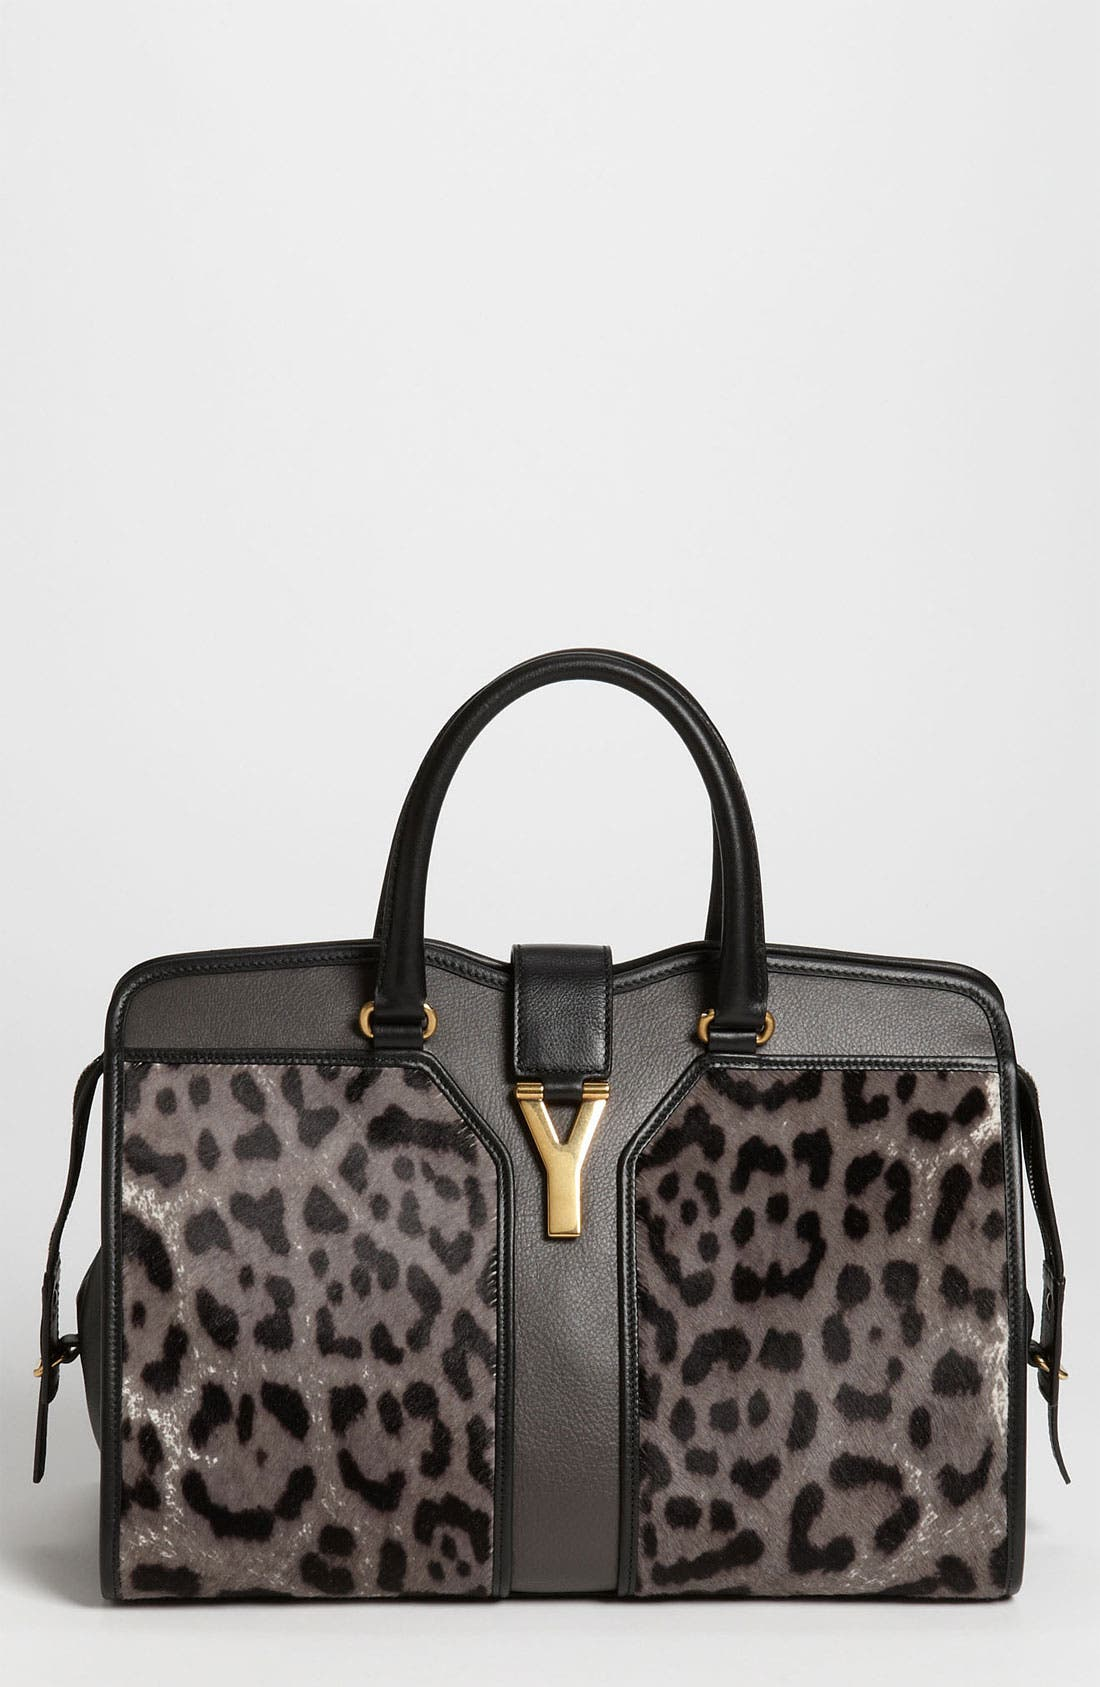 Alternate Image 1 Selected - Yves Saint Laurent 'Cabas Chyc - Medium' Calf Hair Satchel